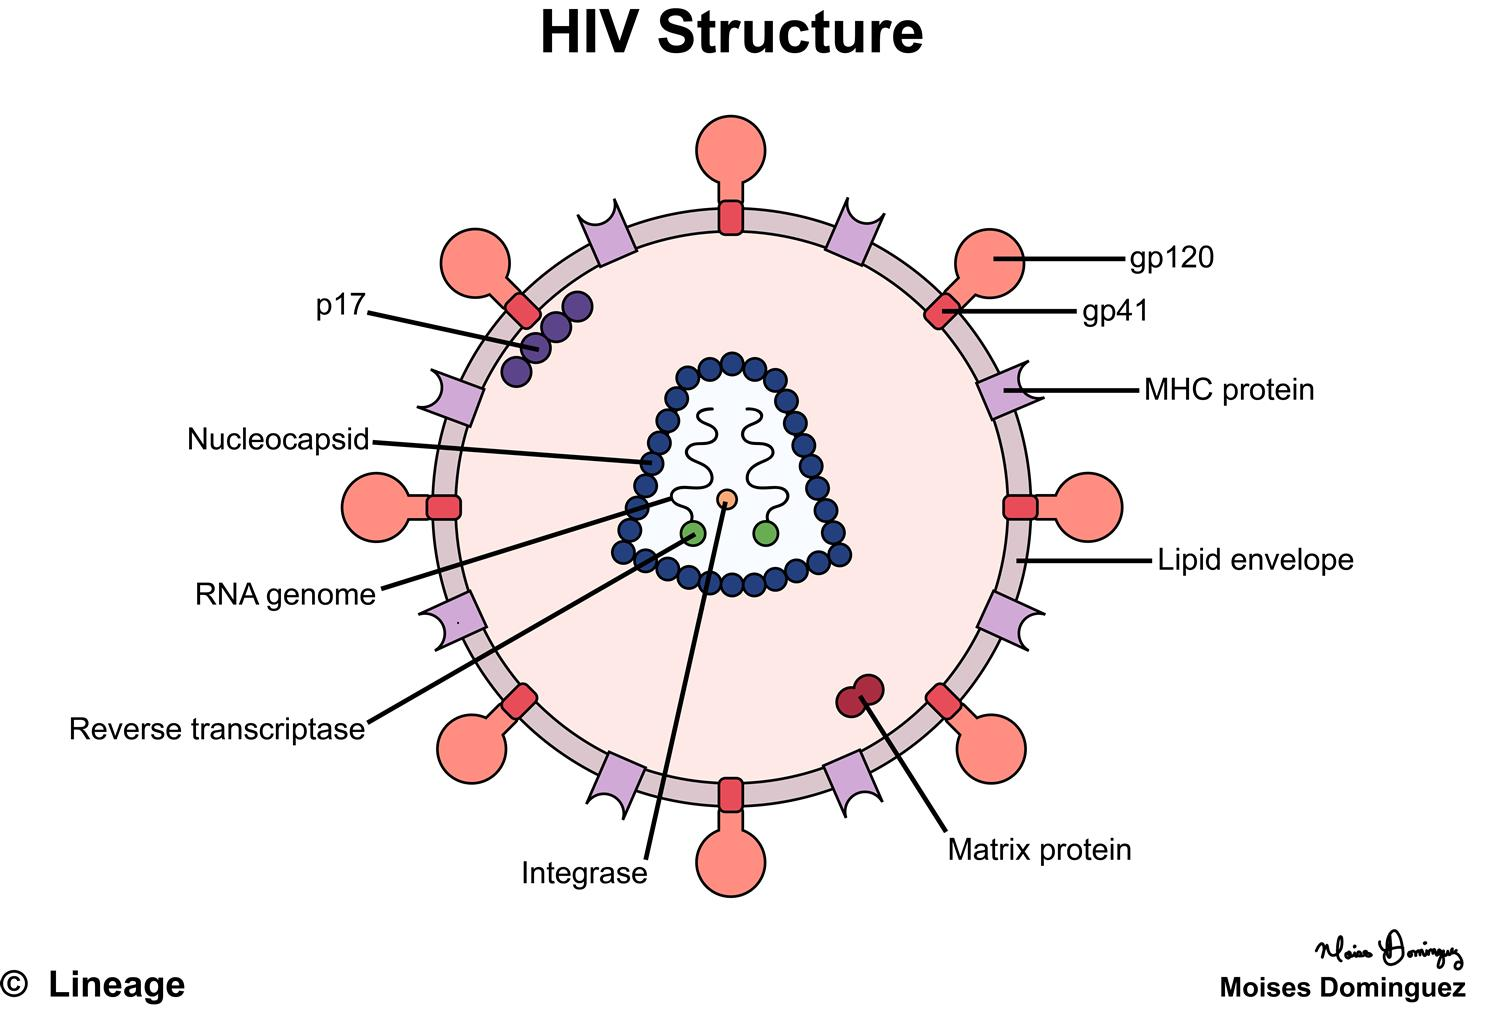 Human Immunodeficiency Virus / Acquired Immunodeficiency ...Hiv Virus Diagram Labeled